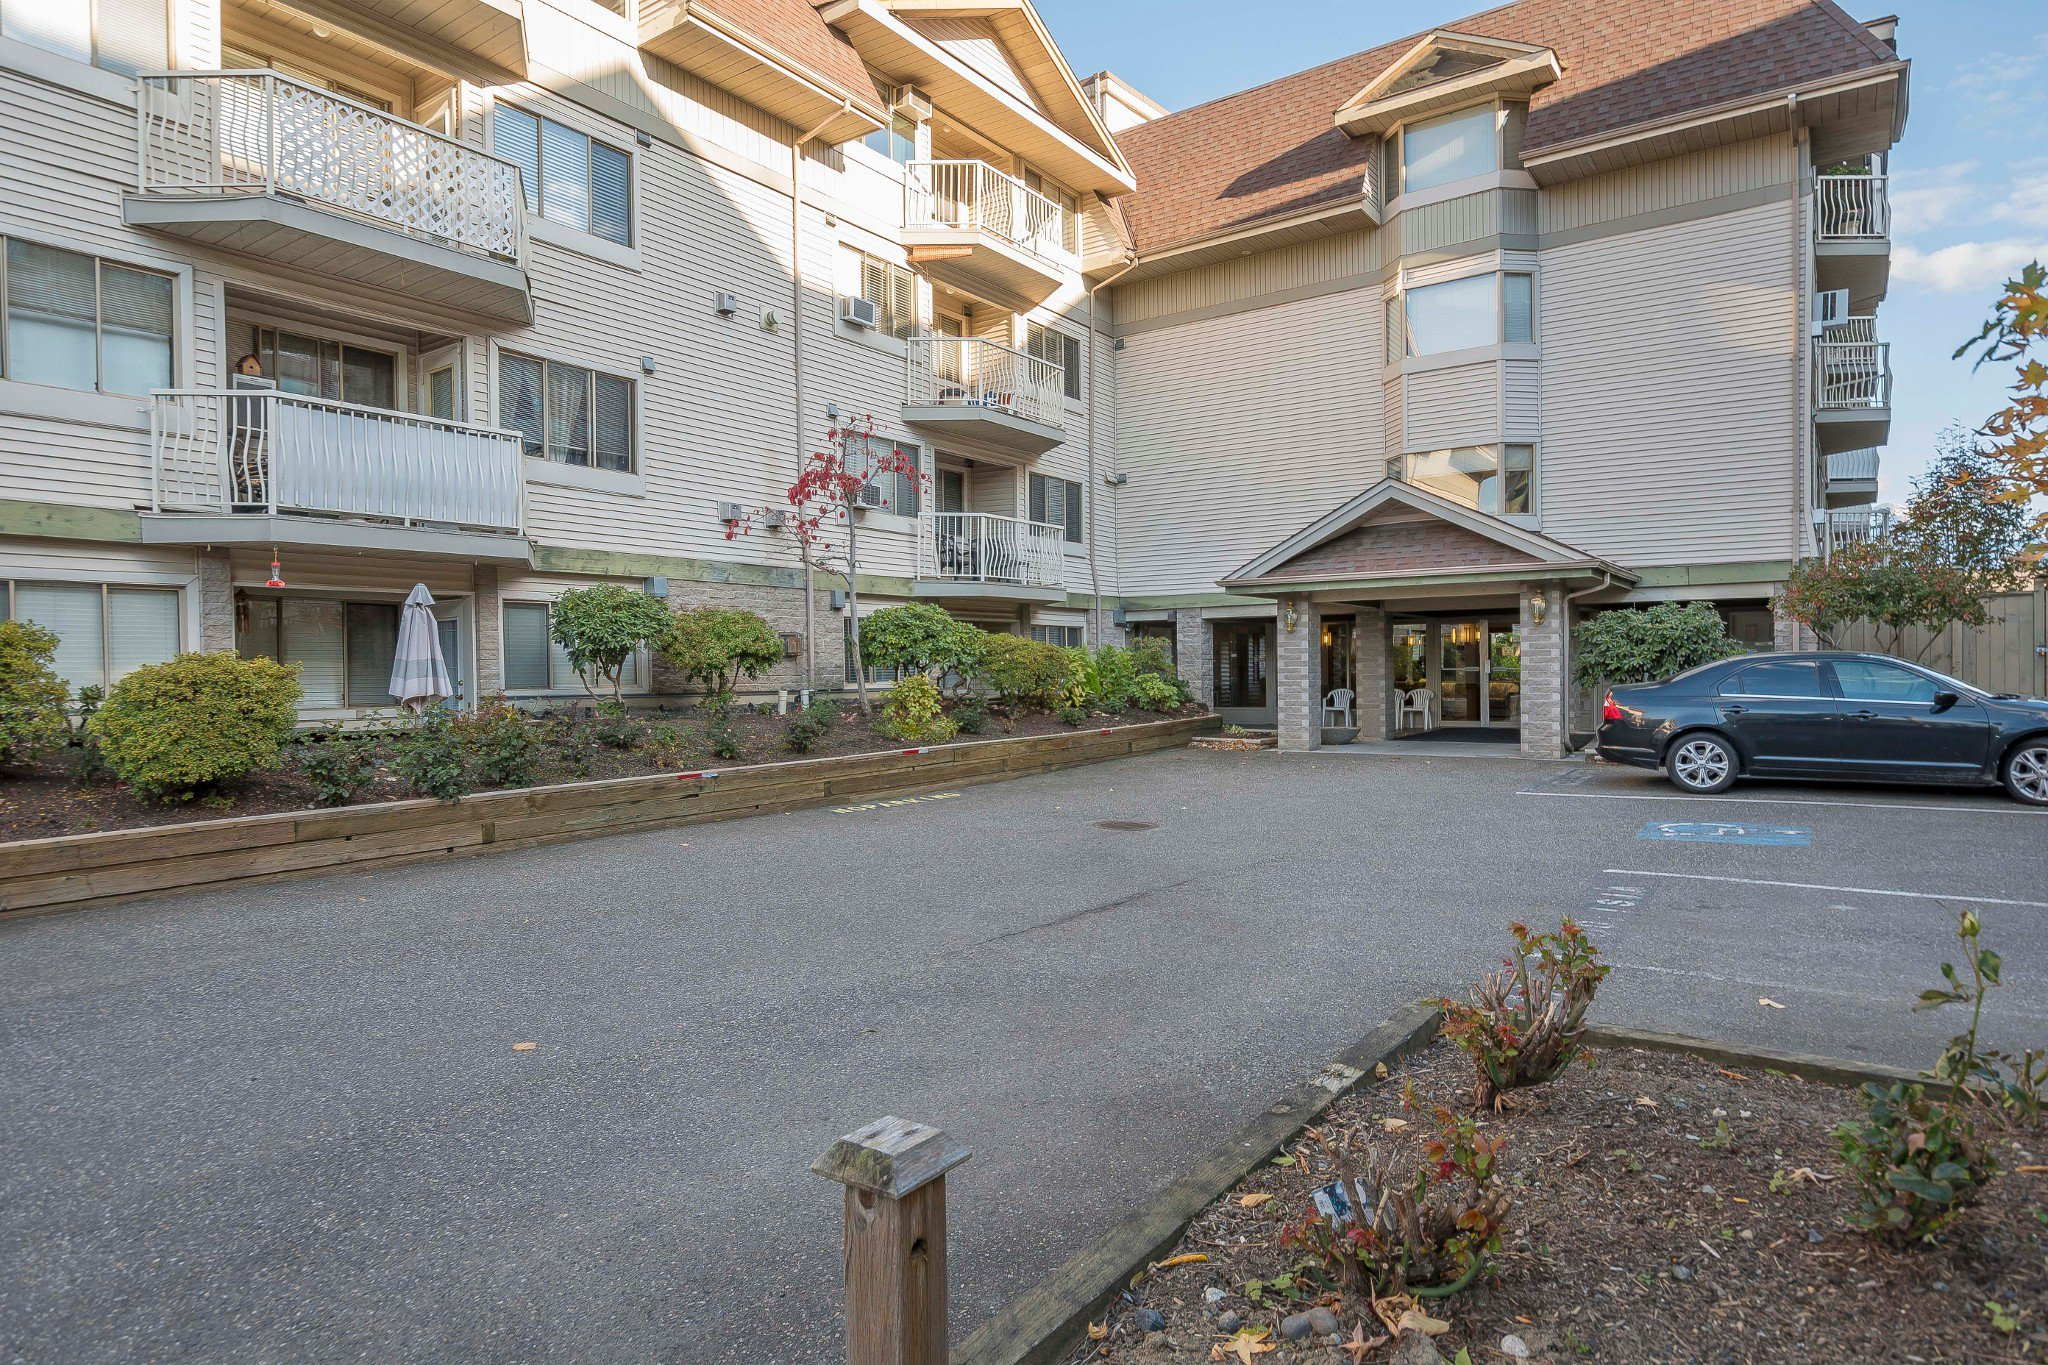 Photo 12: Photos: 305 9186 Edward Street in Chilliwack: Condo for sale : MLS®# R2218862